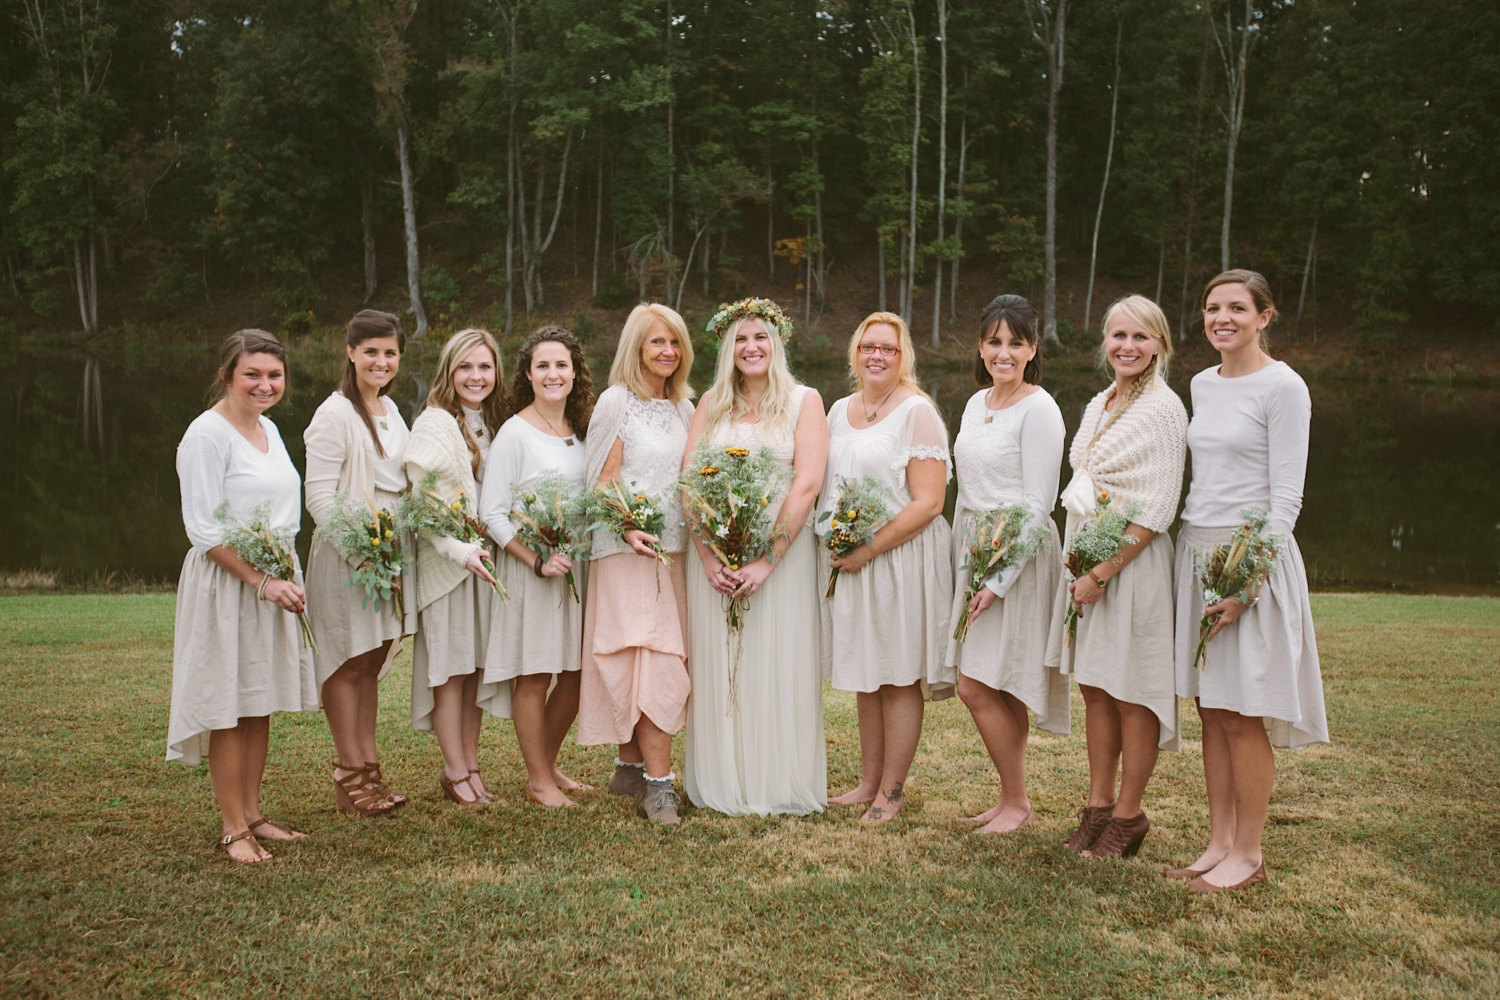 These bridesmaid skirts feature a hi low hem and are available in a variety of colors. | https://emmalinebride.com/bridesmaids/bridesmaid-skirts-hi-low-hem/